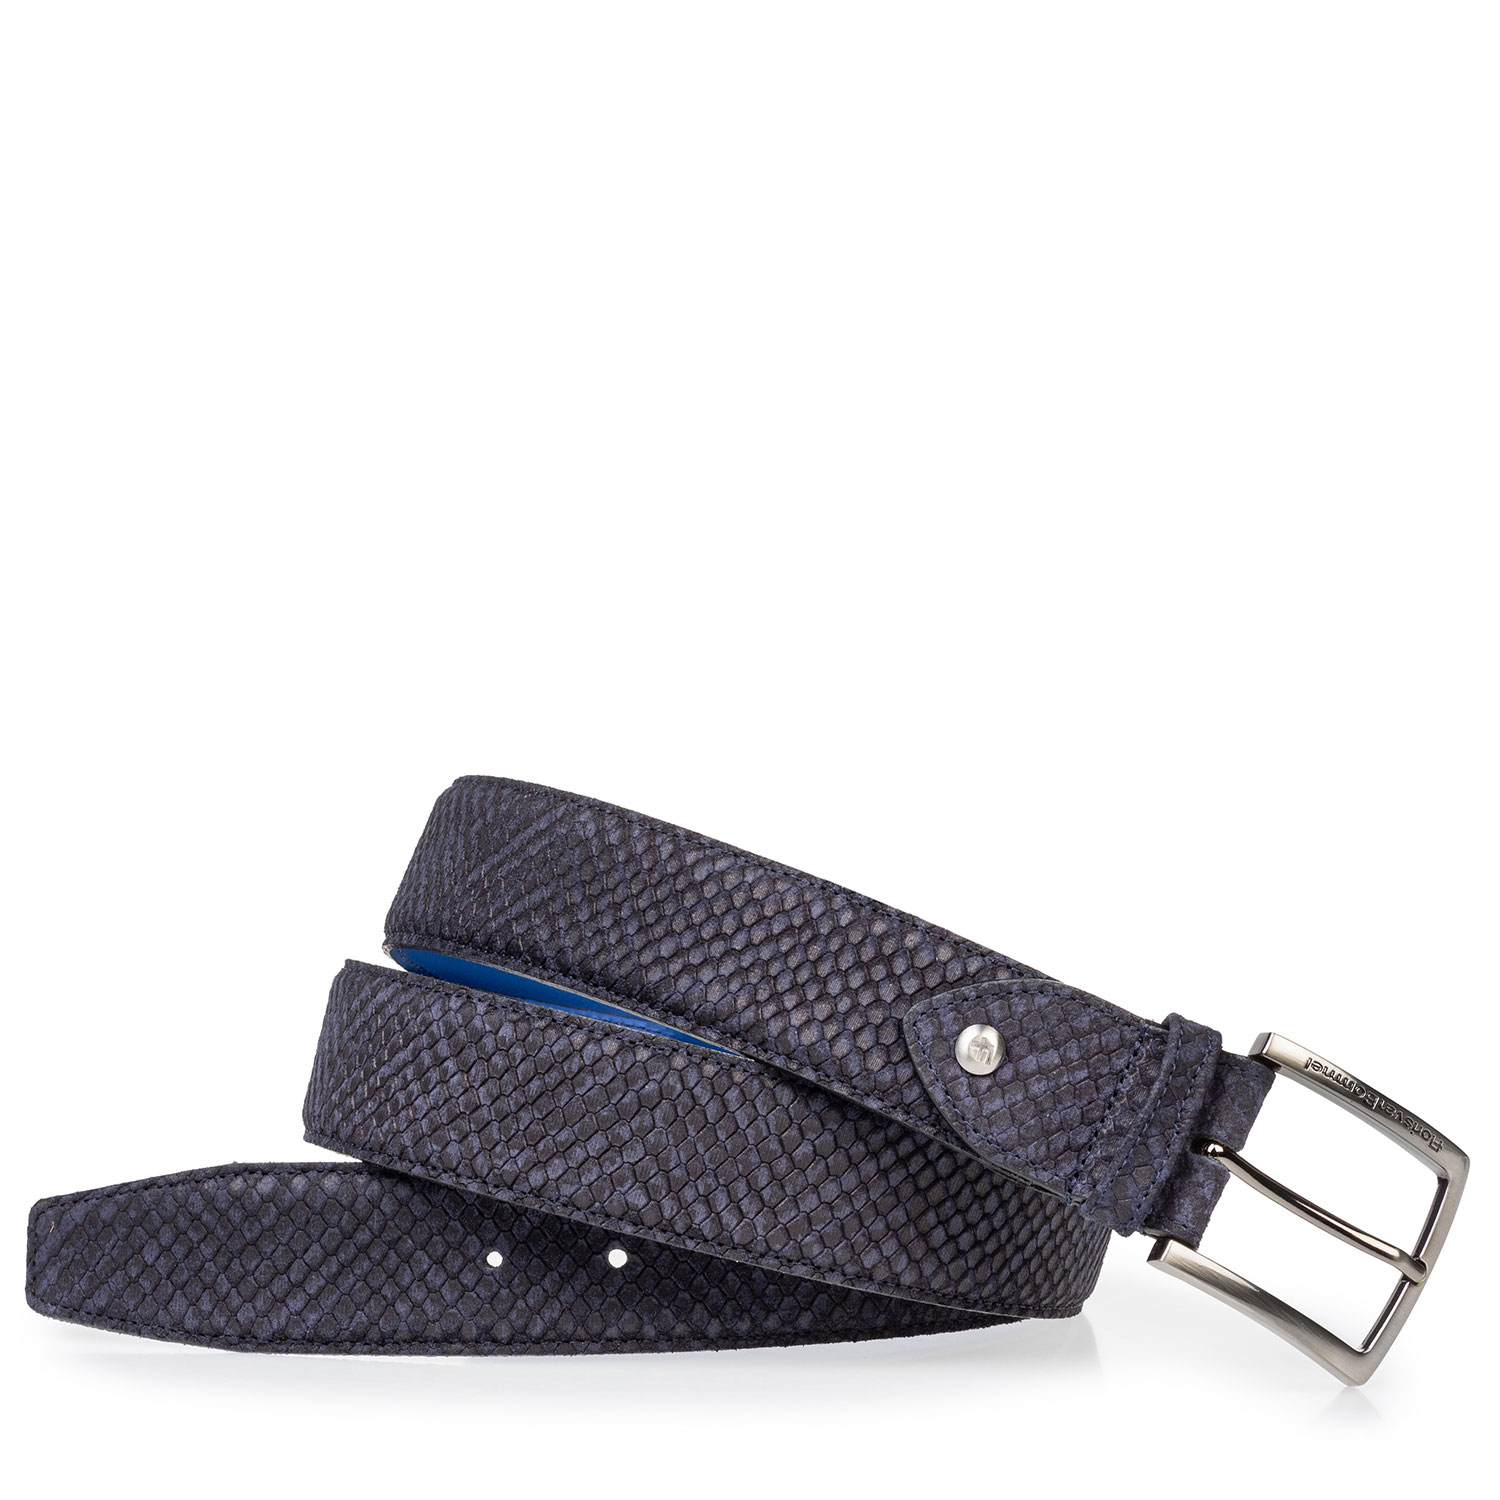 75204/12 - Suede leather belt blue with black print